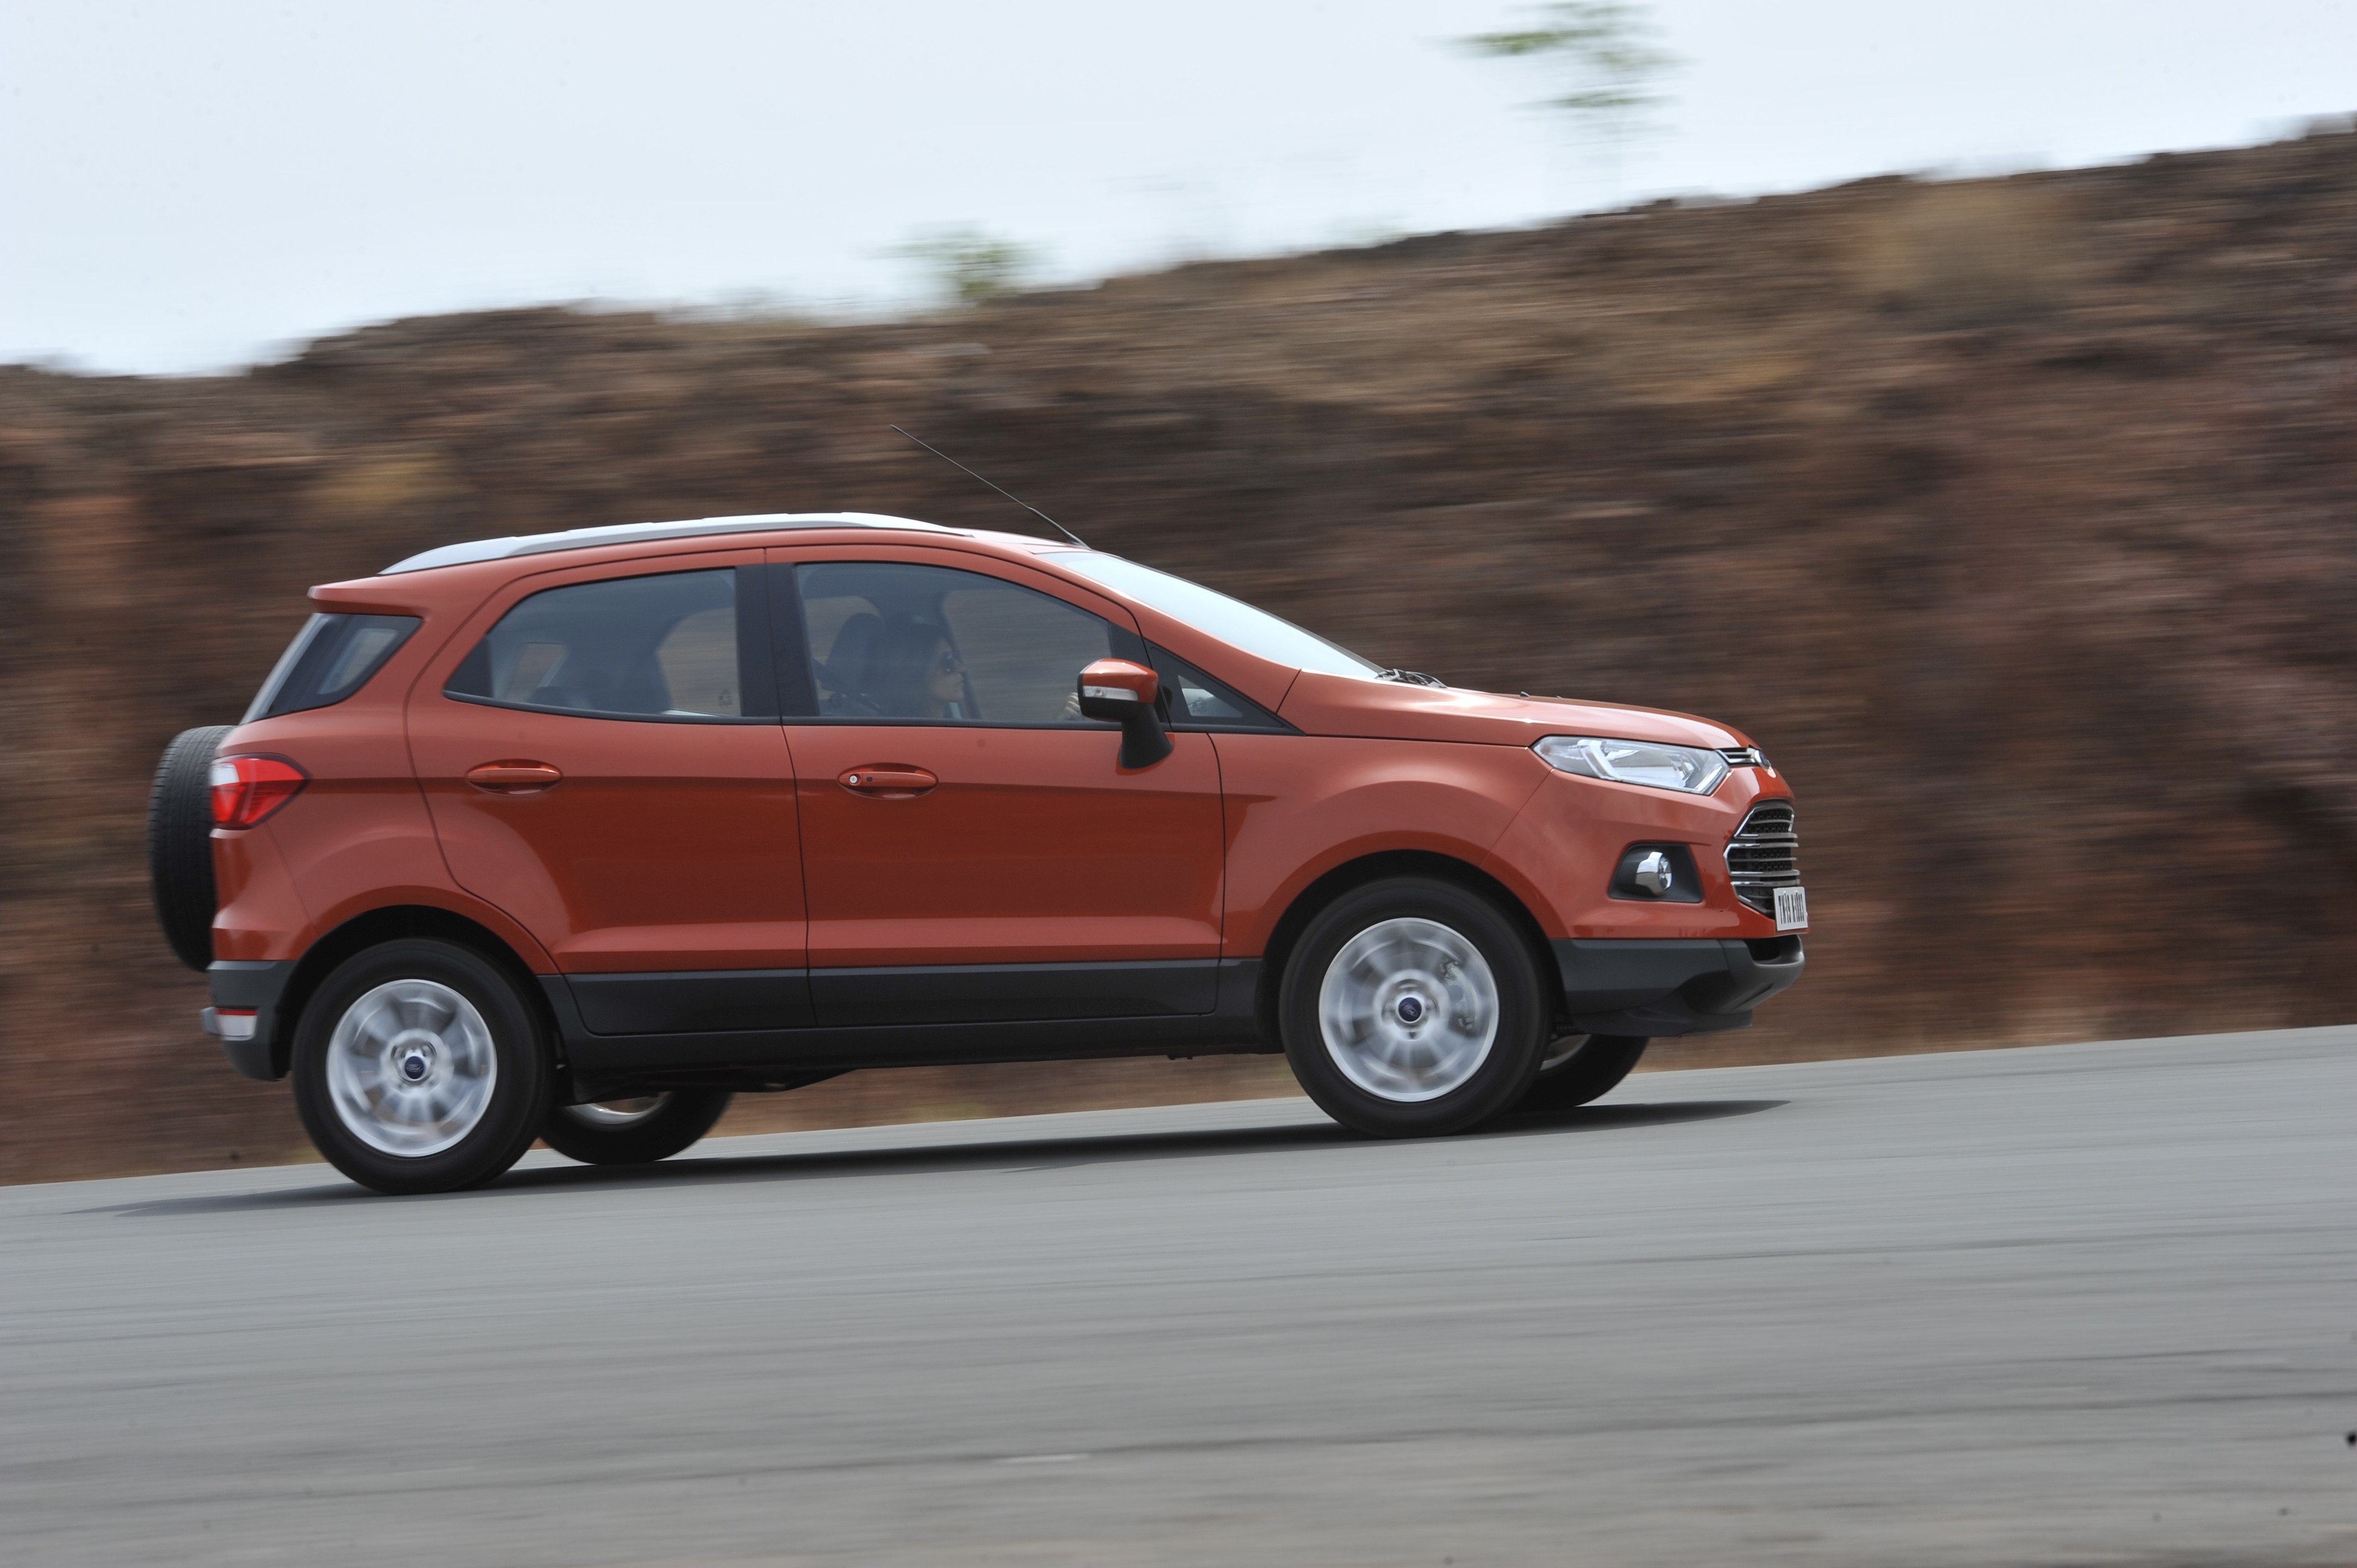 ford ecosport bookings reopen car news suv crossovers autocar india. Black Bedroom Furniture Sets. Home Design Ideas